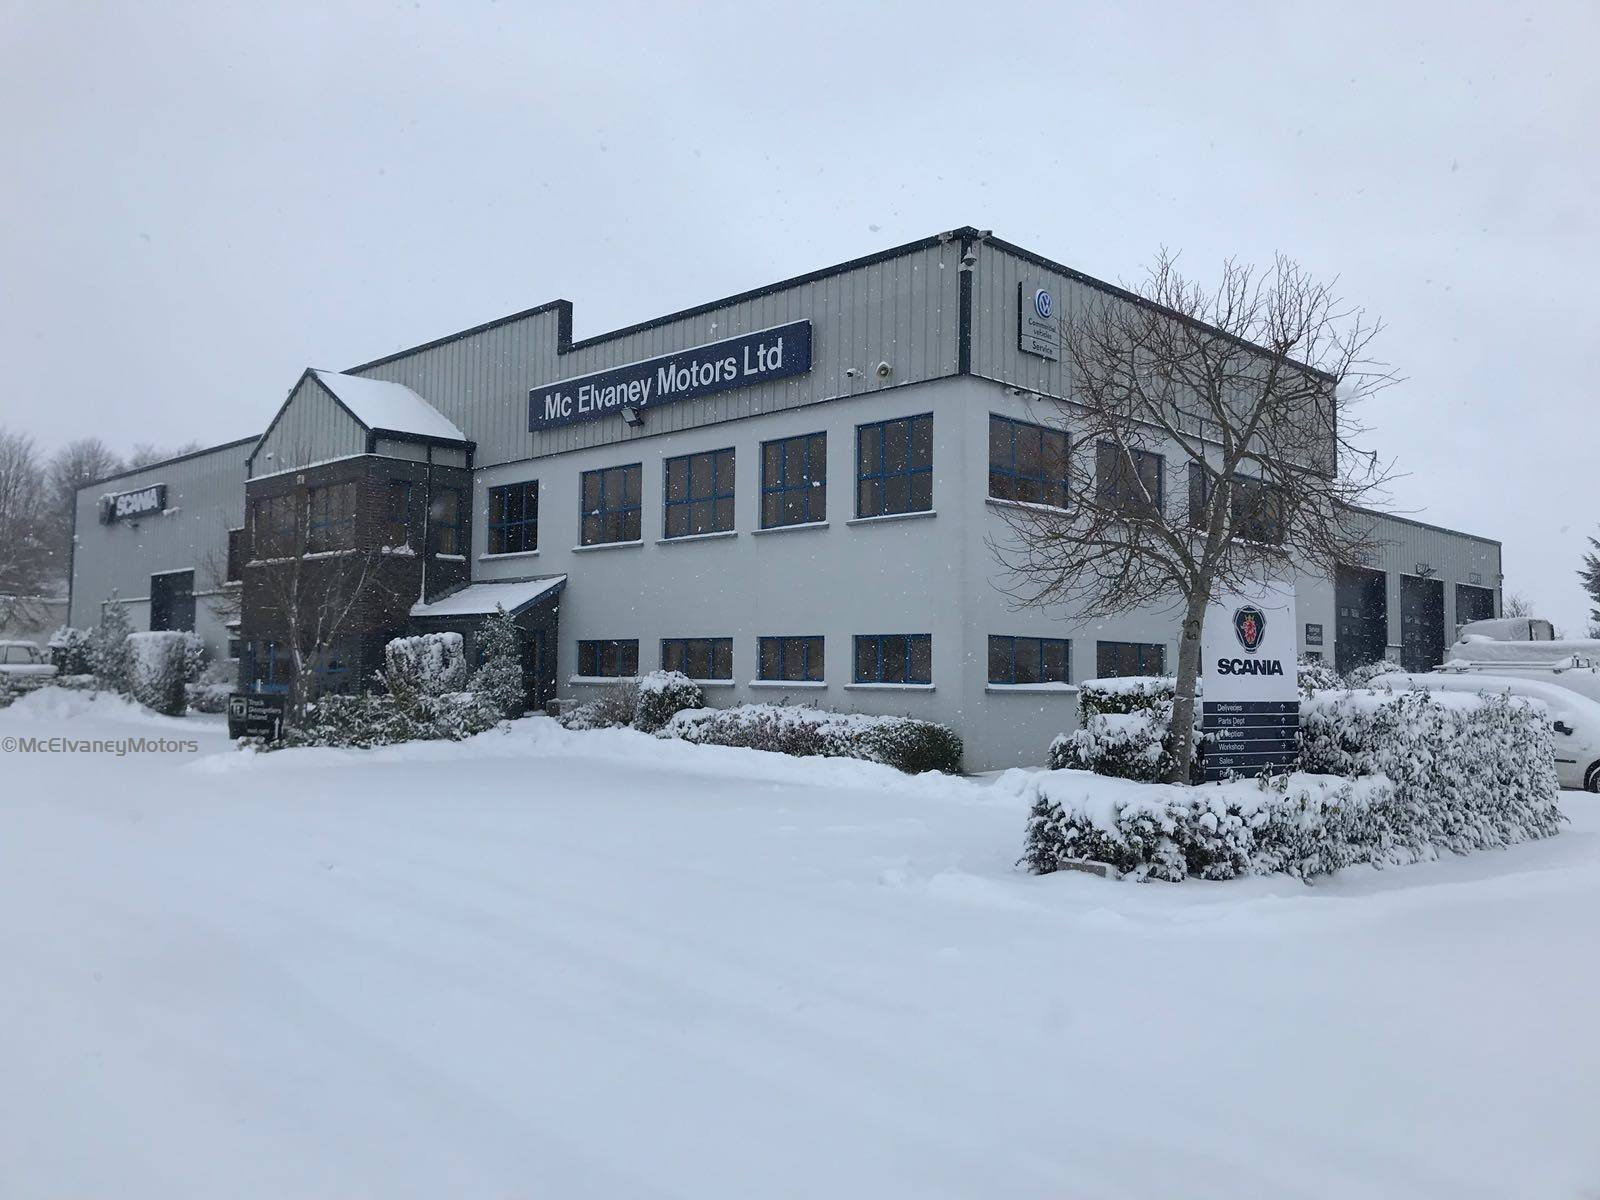 Monaghan and Dublin Office Close for Storm Emma!